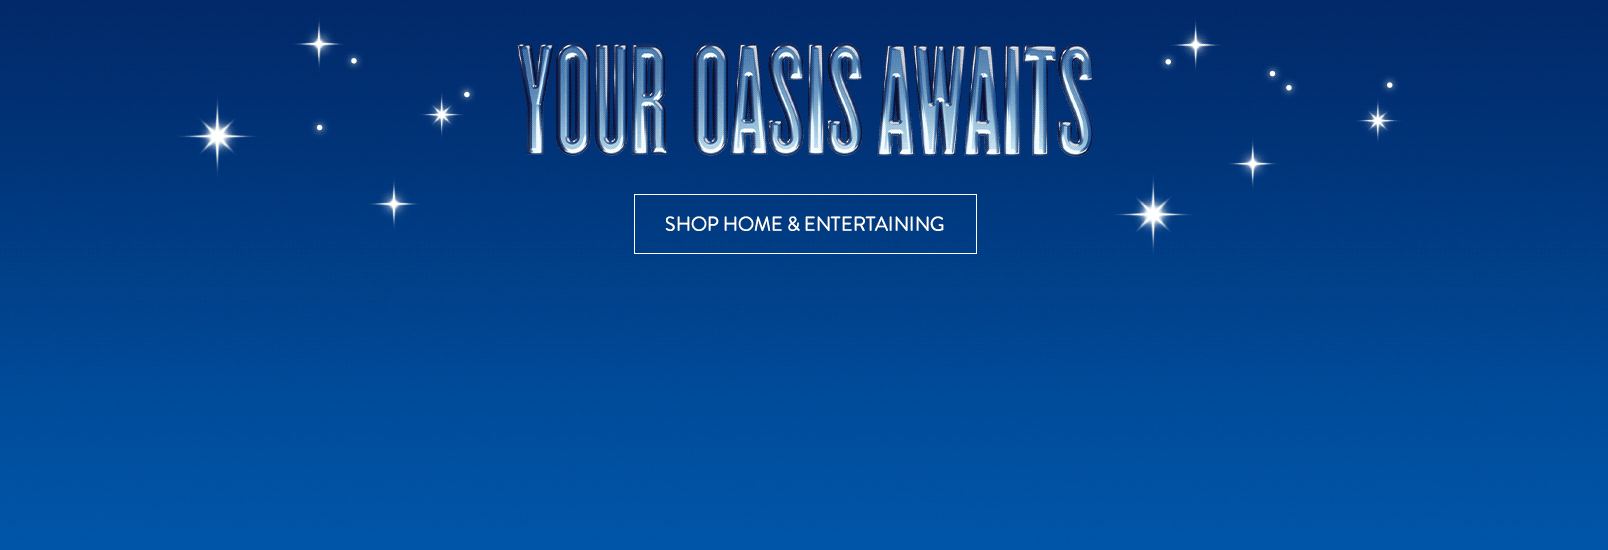 Your oasis awaits: a Beast blender, food and drinks.